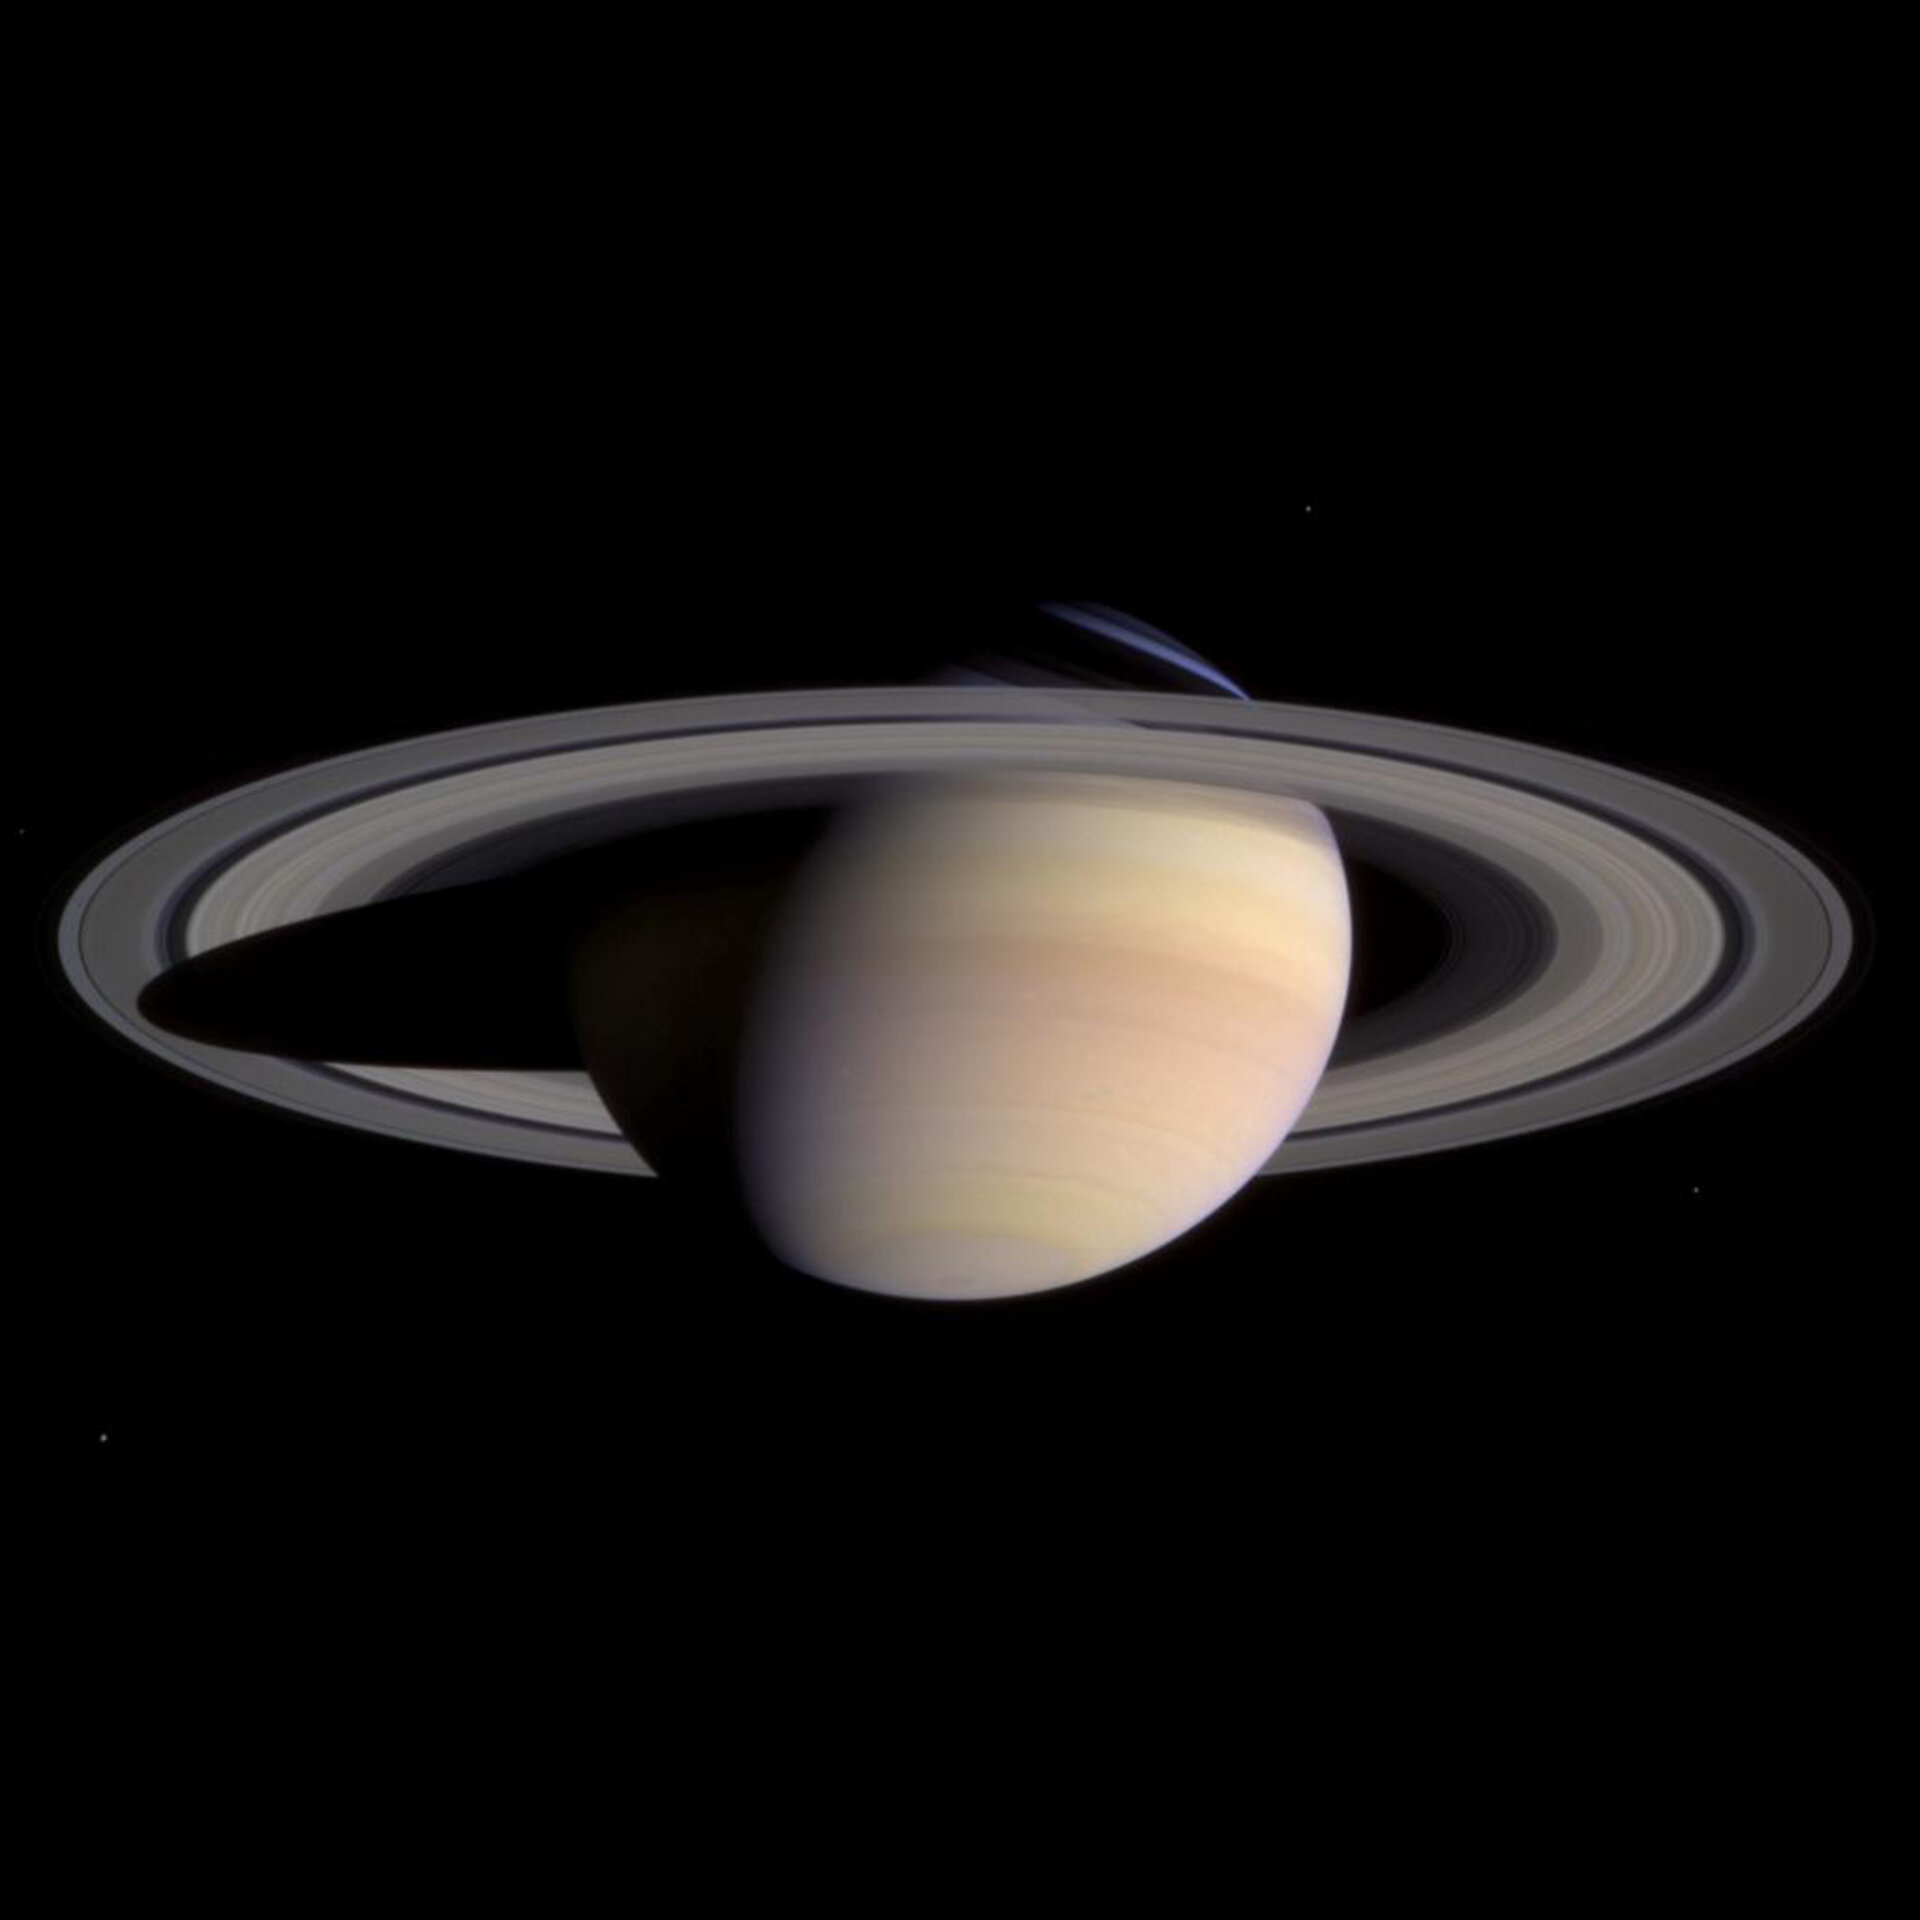 Last  chance for 'eyeful' of Saturn